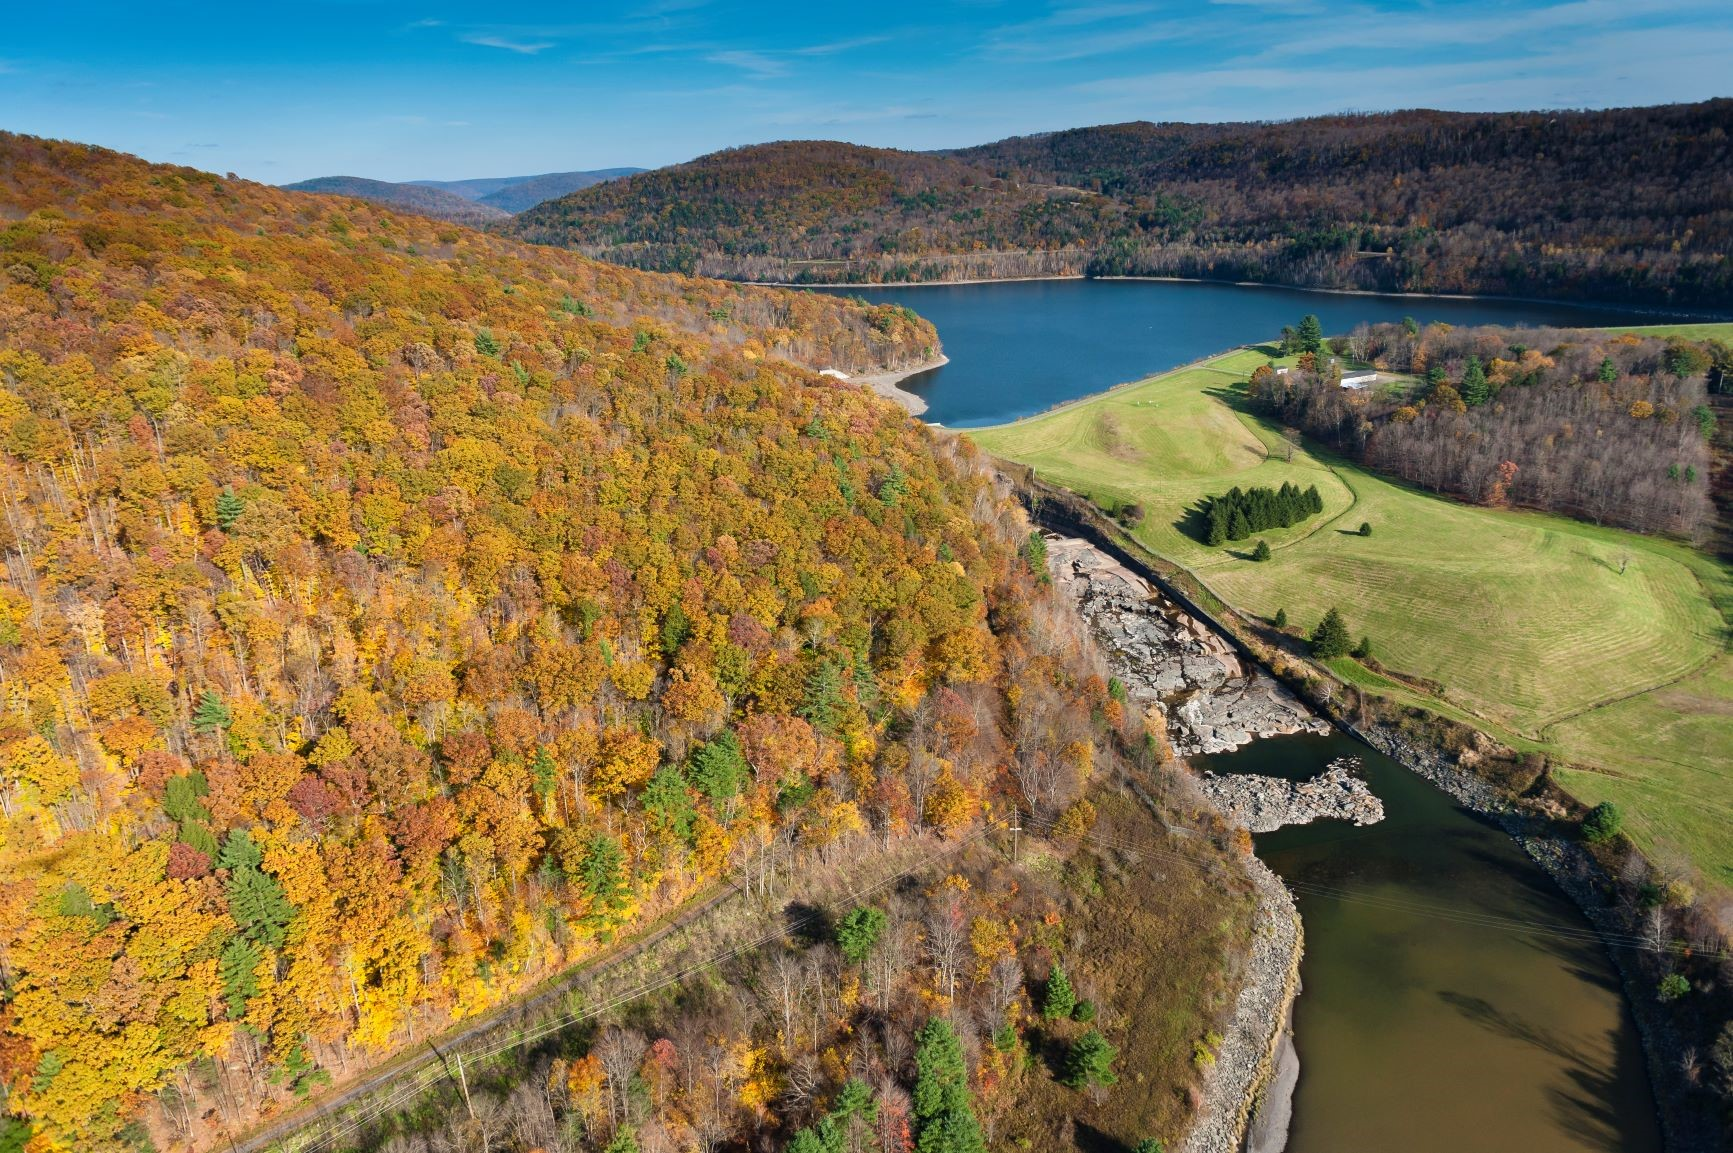 Photo credit: Garth Lenz. View of the Pepacton Reservoir, the beginning of the Upper Delaware River Tailwaters